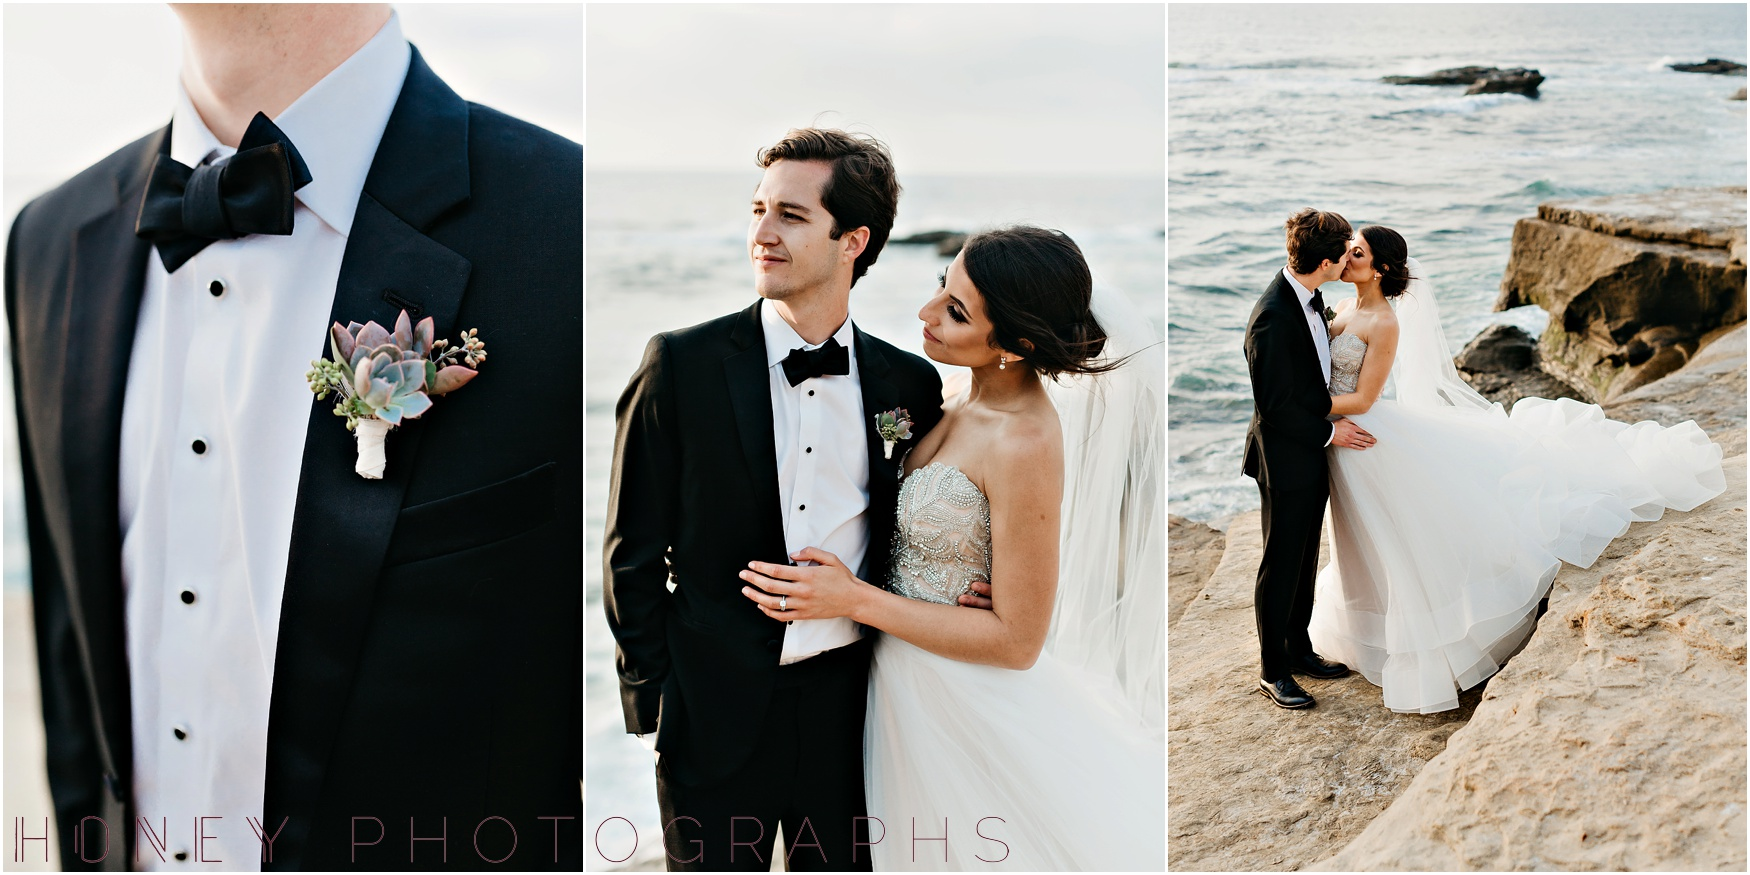 la_jolla_timeless_classic_elegant_cliffs_beach_black_tie_wedding039.jpg